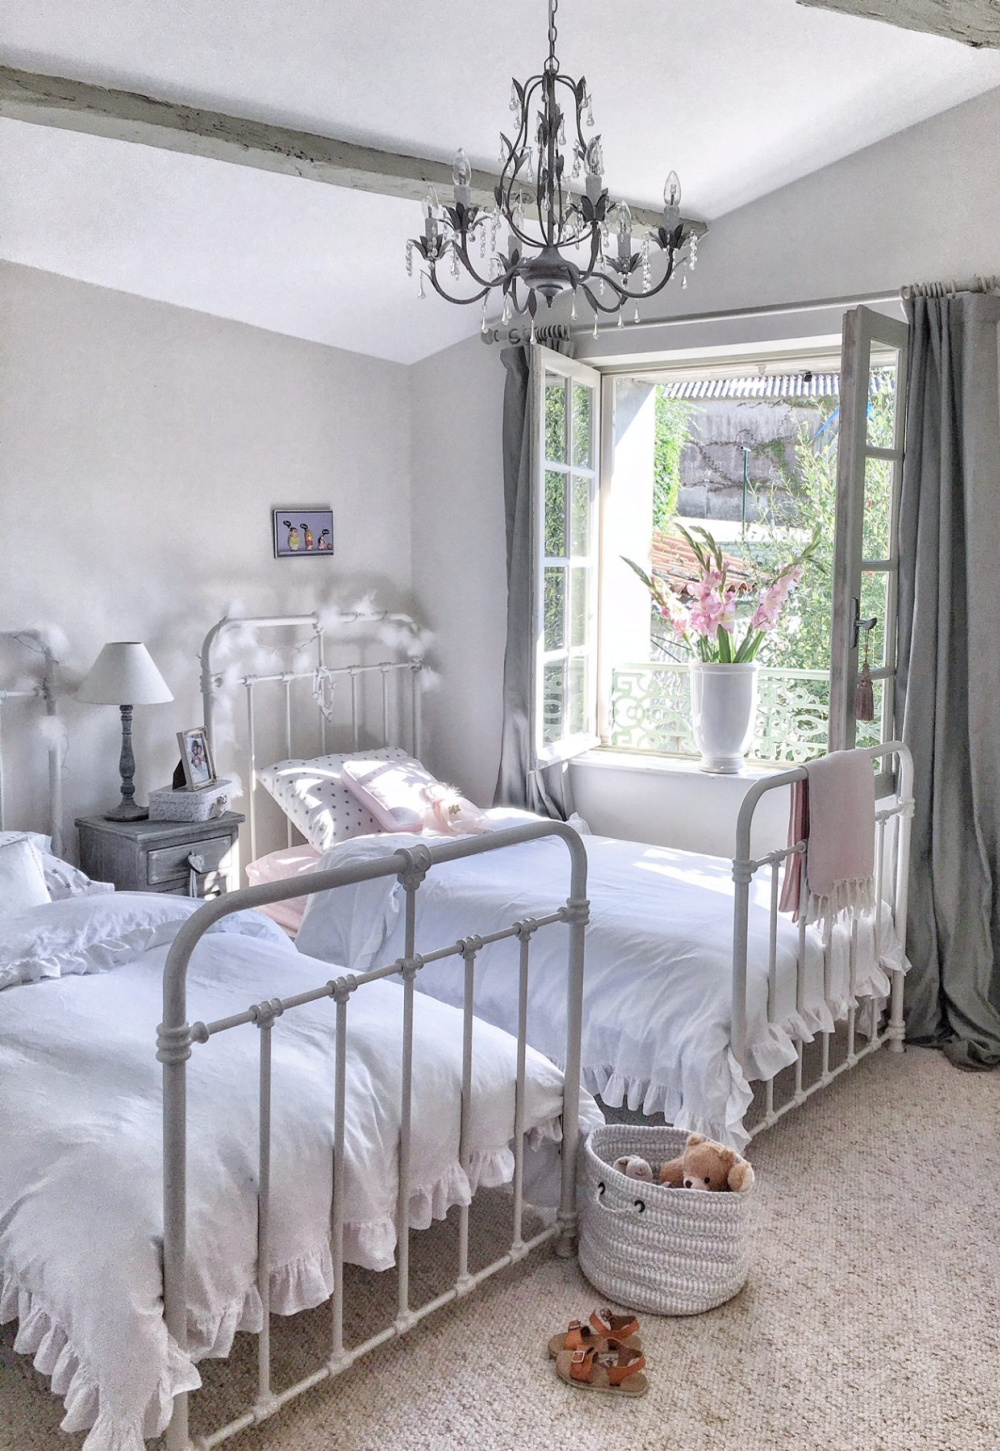 Charming French farmhouse girl's bedroom with iron panel beds and windows open to countryside - Vivi et Margot. #frenchfarmhouse #bedrooms #girlsbedroom